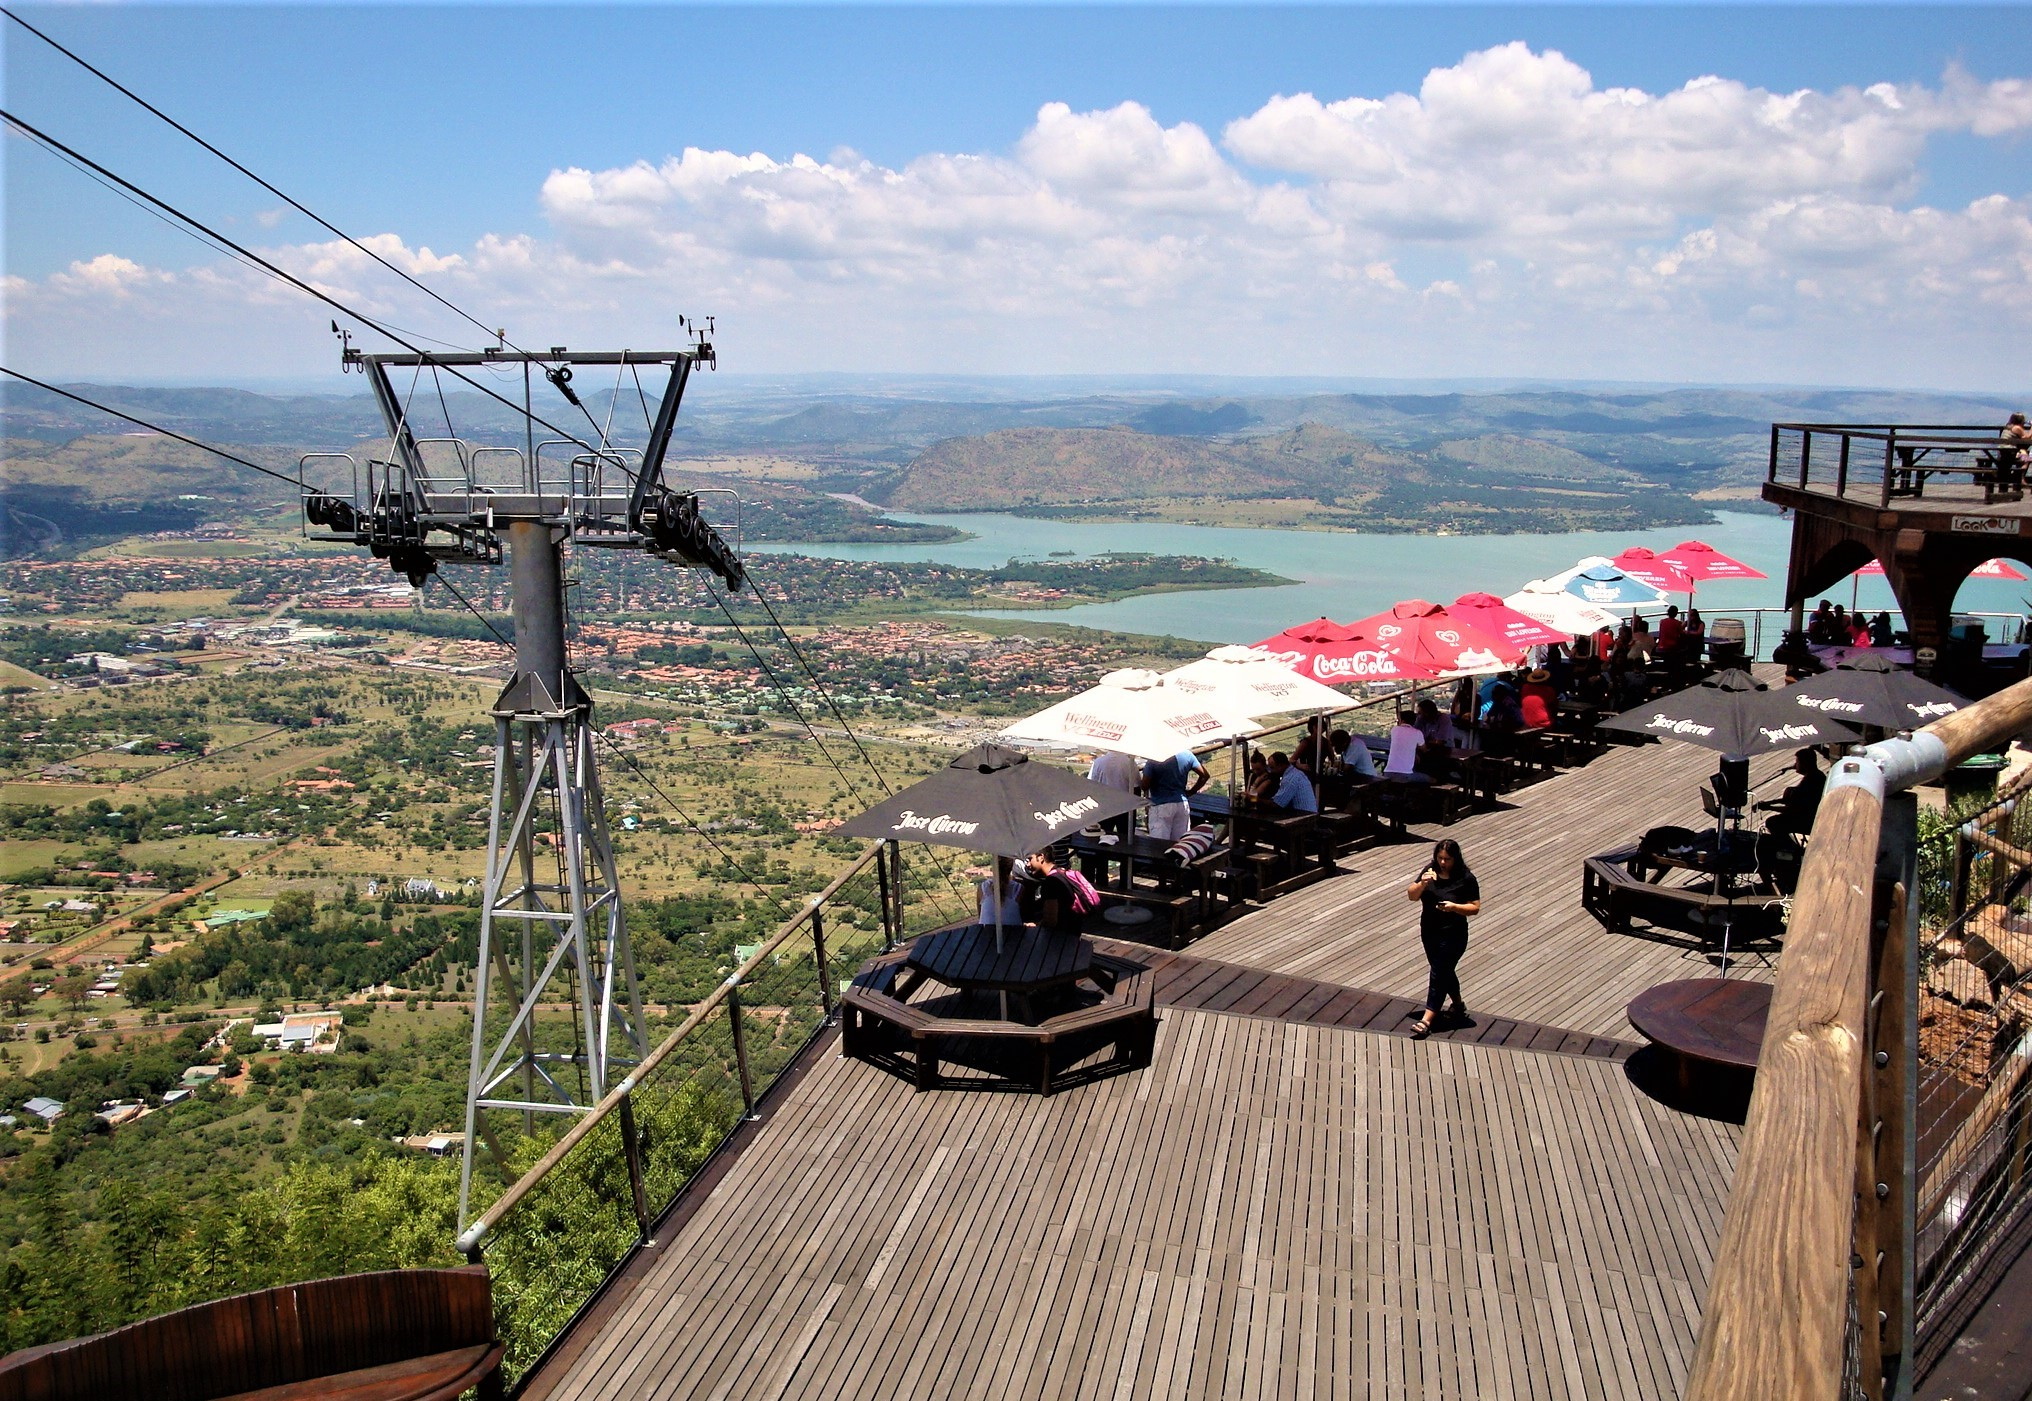 Joburgs Adventure Bus: Multi activity experience in South Africa